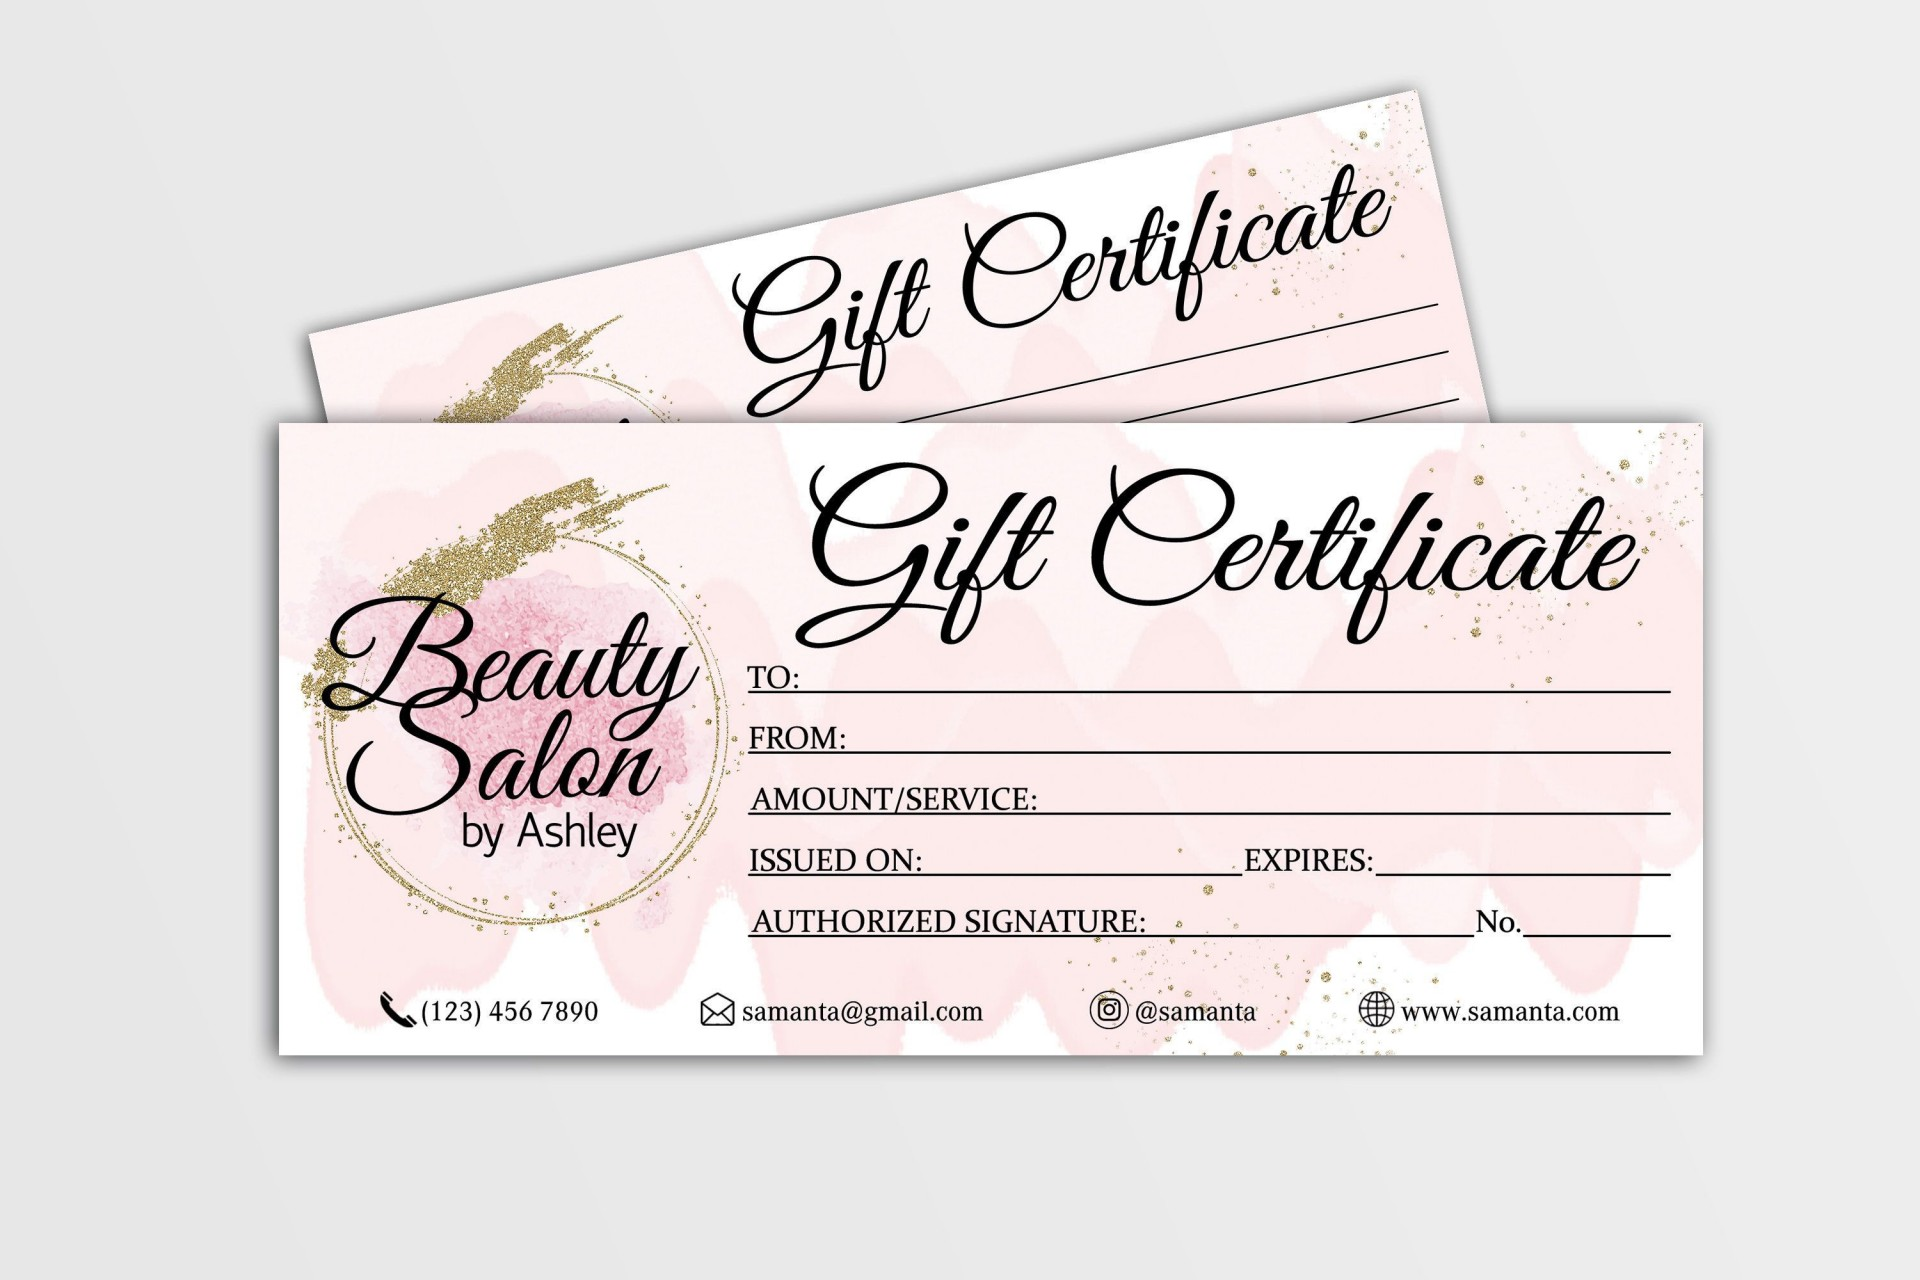 004 Fascinating Salon Gift Certificate Template Design 1920